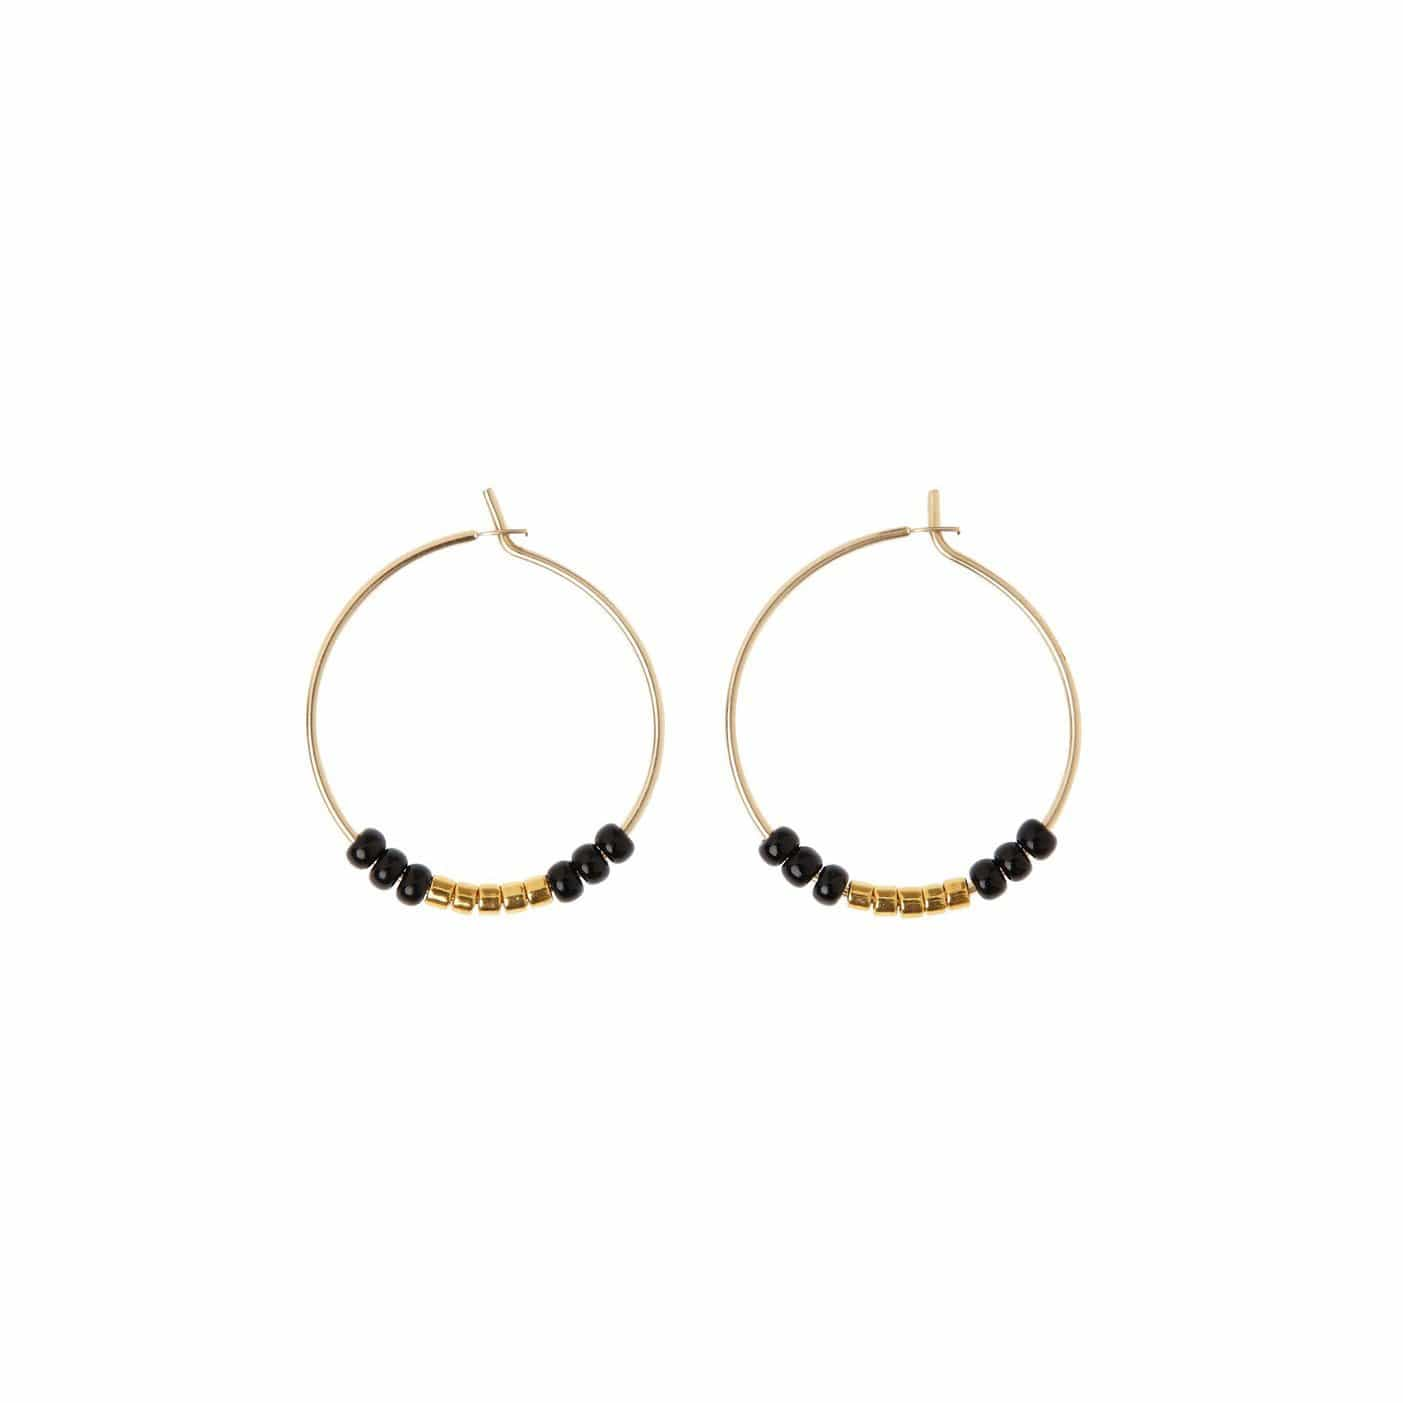 Sidai Designs Jewelry Hoop Earrings - Extra Small, Black